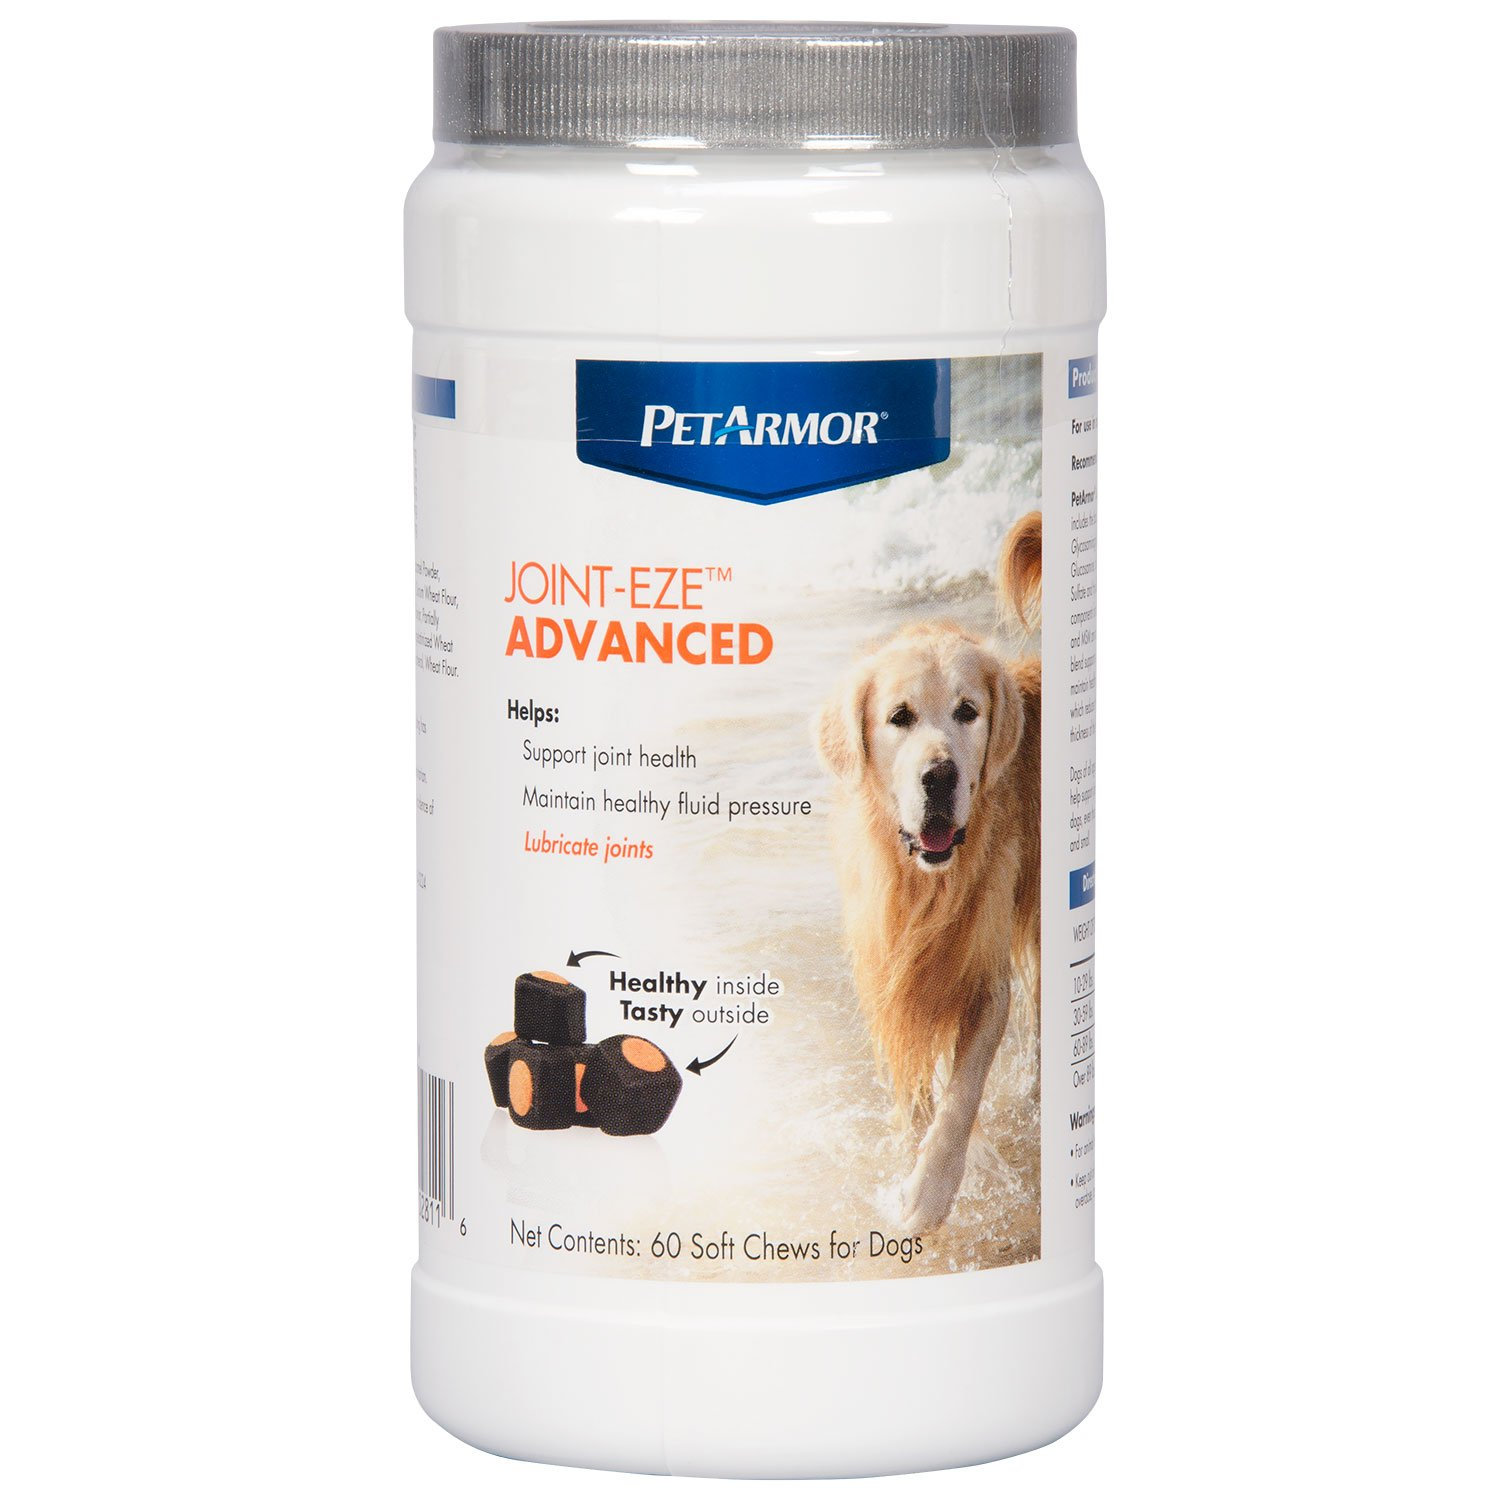 PETARMOR Joint-Eze Advanced for Dogs, 60 count by PETARMOR (Image #5)